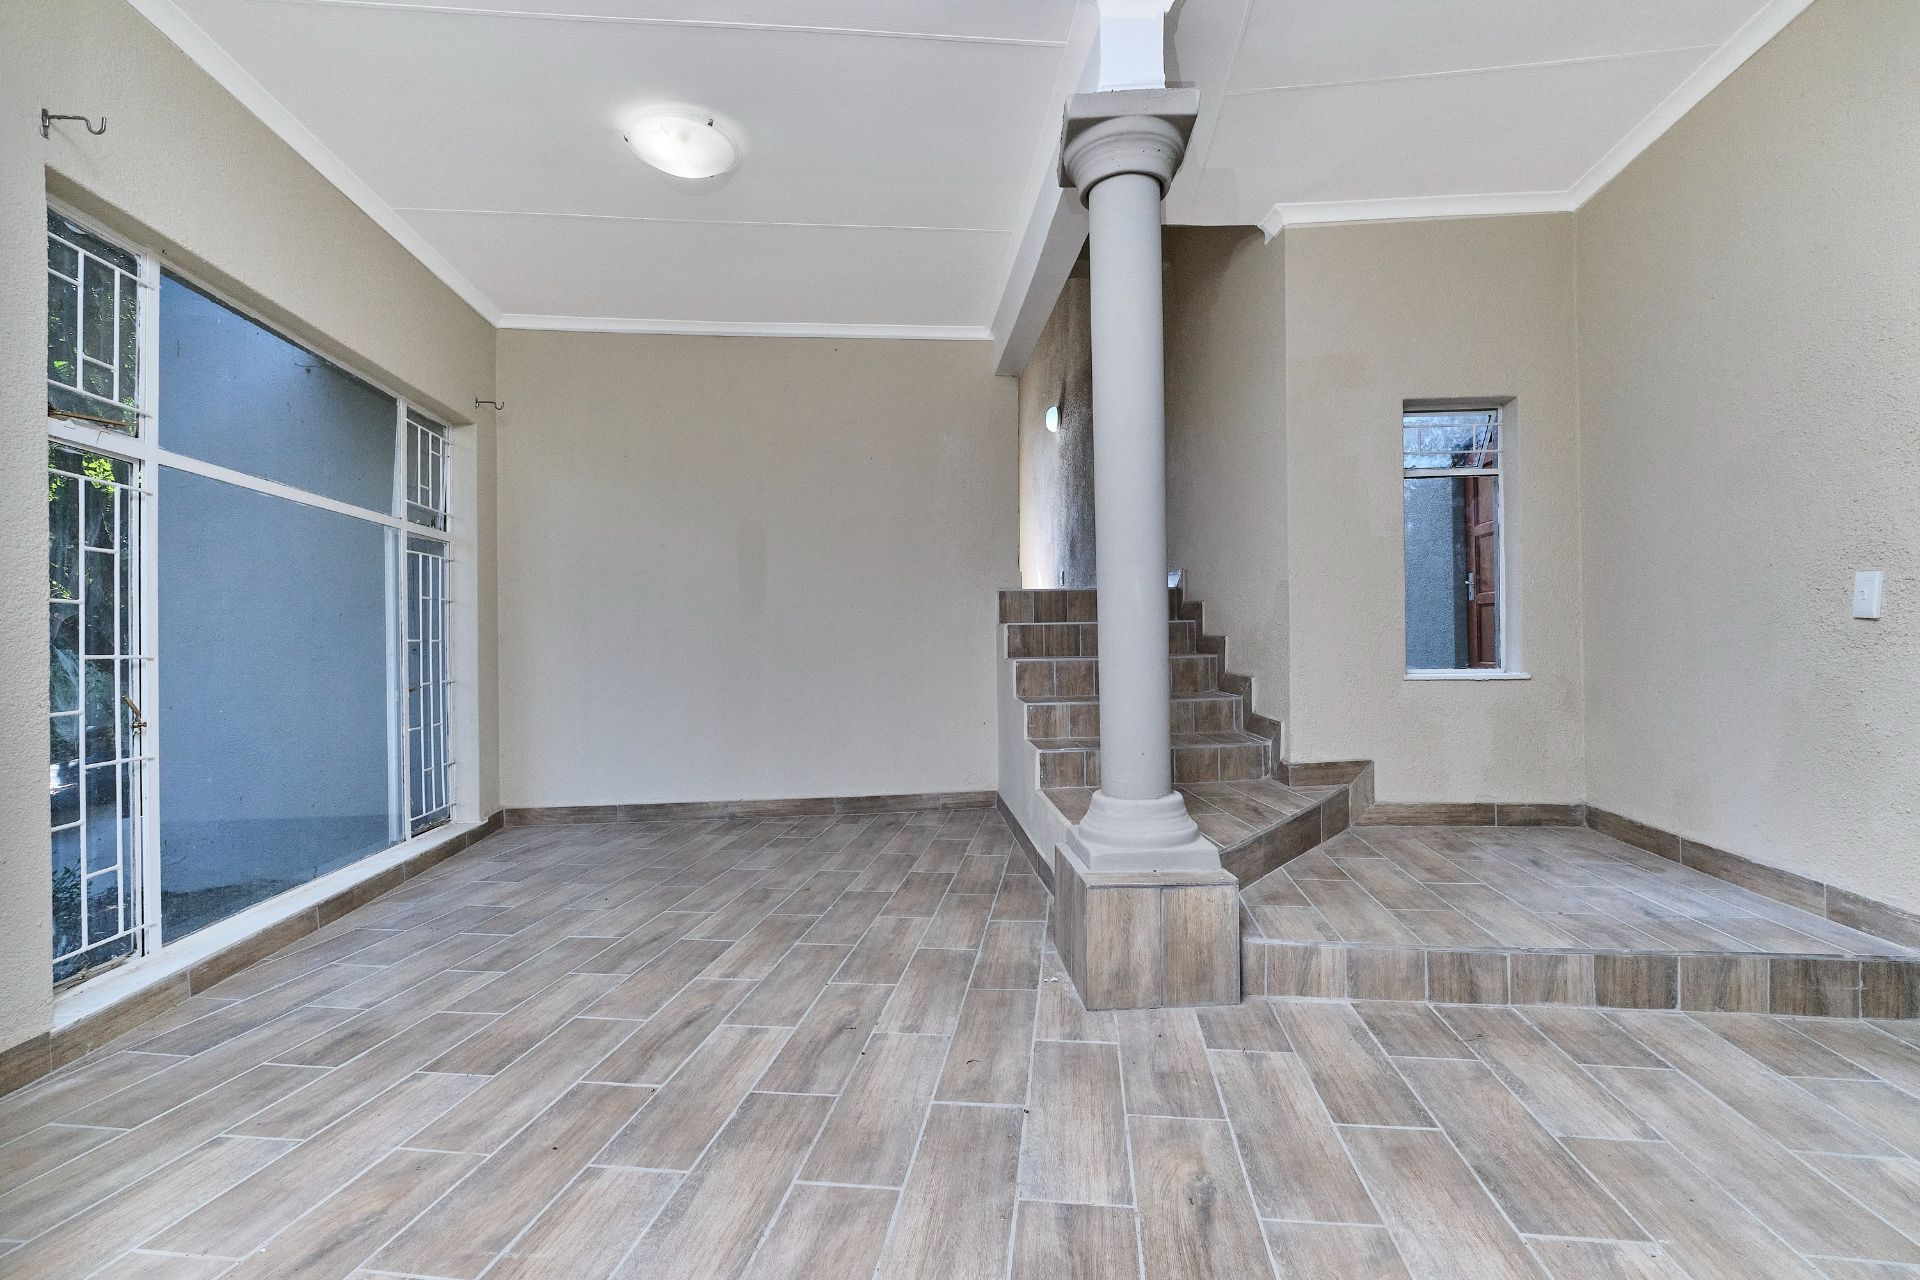 House in Olivedale - Entrance Area -Pause area.jpg